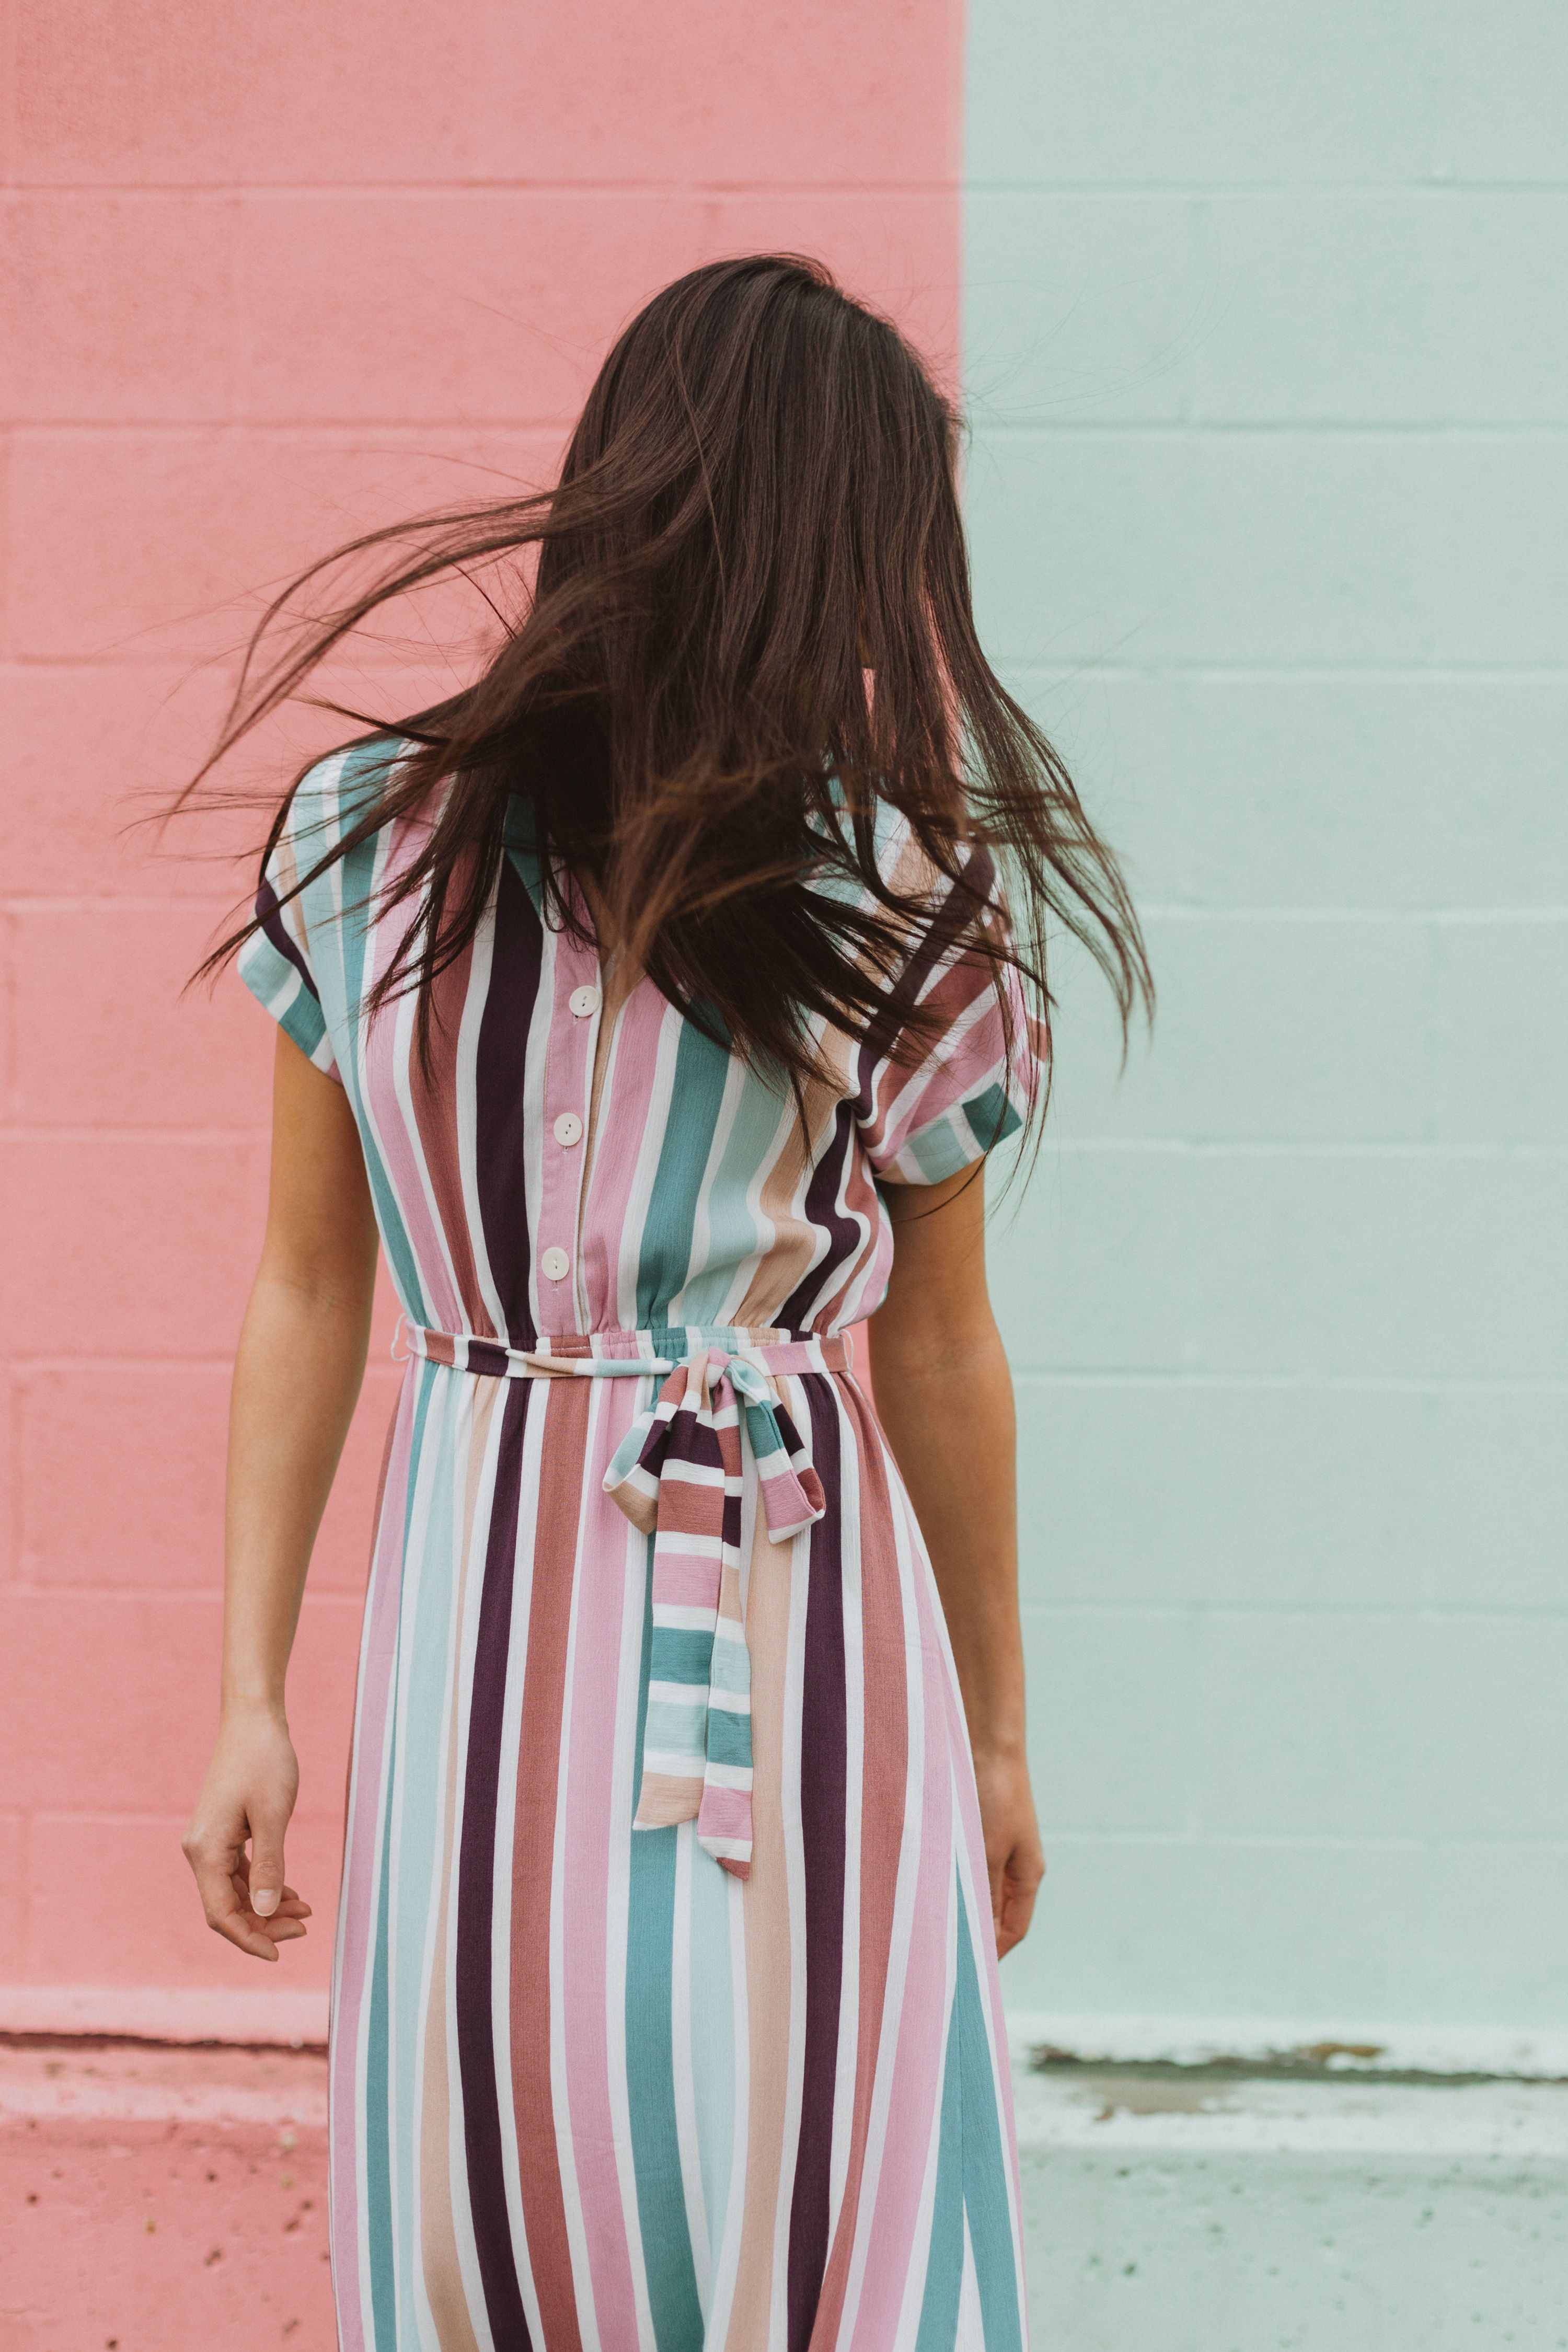 The Cha Cha Striped Maxi Dress Is As If All Your Favorite Things Came Together As A Dress It Is Nursing Friendl Clothes For Women Dresses Contemporary Outfits [ 4500 x 3000 Pixel ]